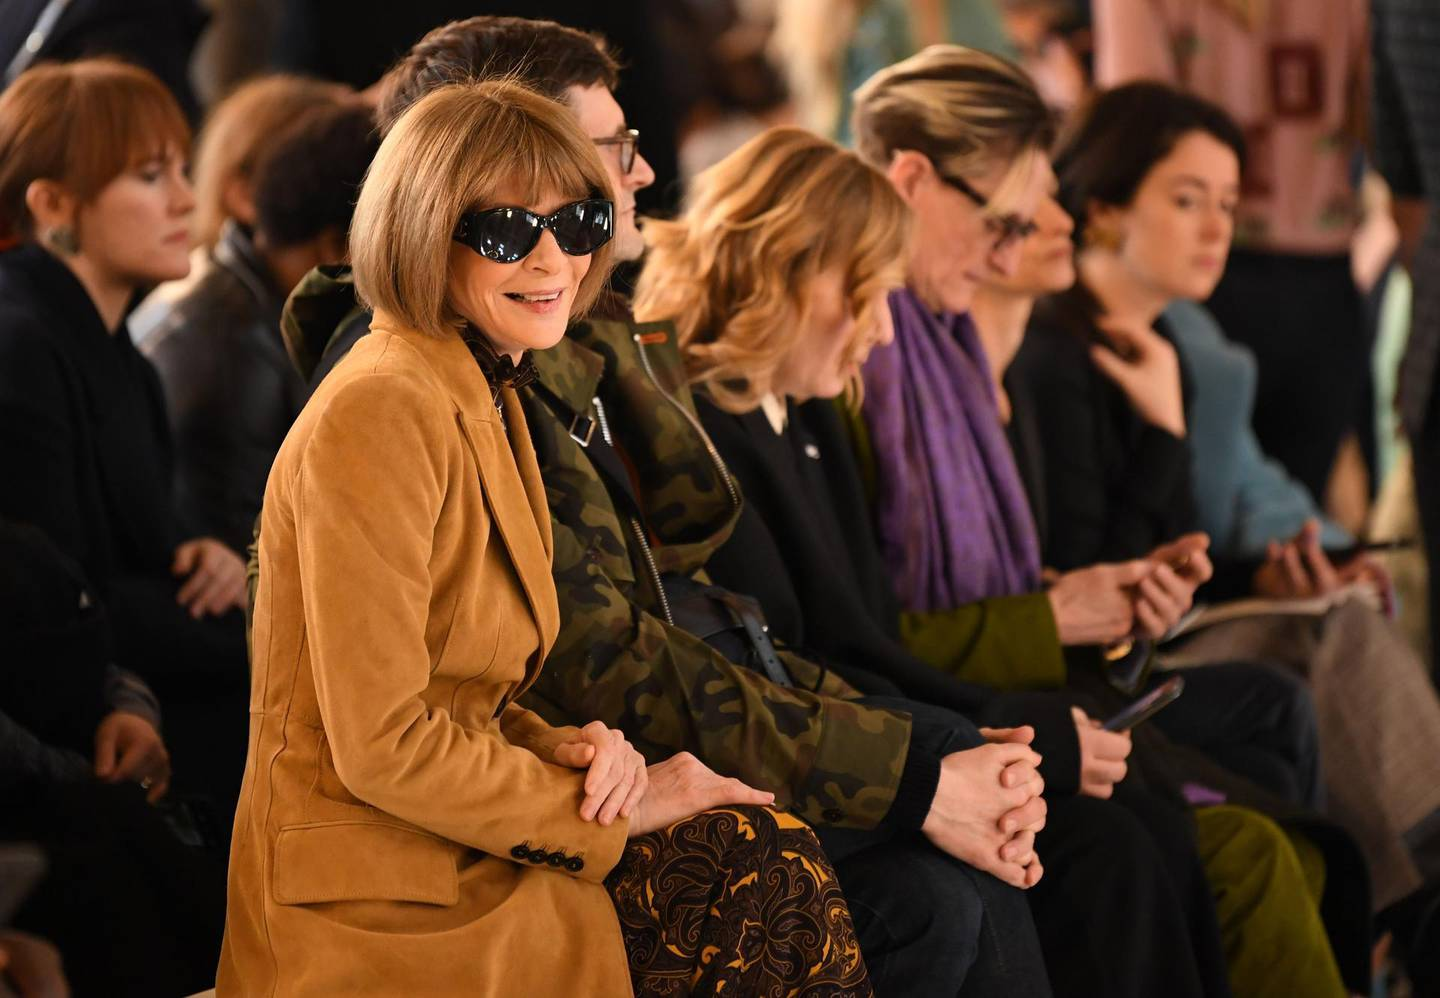 Vogue chief editor Anna Wintour takes her seat in the front row for the catwalk show by fashion house Victoria Beckham during their Autumn/Winter 2020 collection on the third day of London Fashion Week in London on February 16, 2020.  / AFP / DANIEL LEAL-OLIVAS